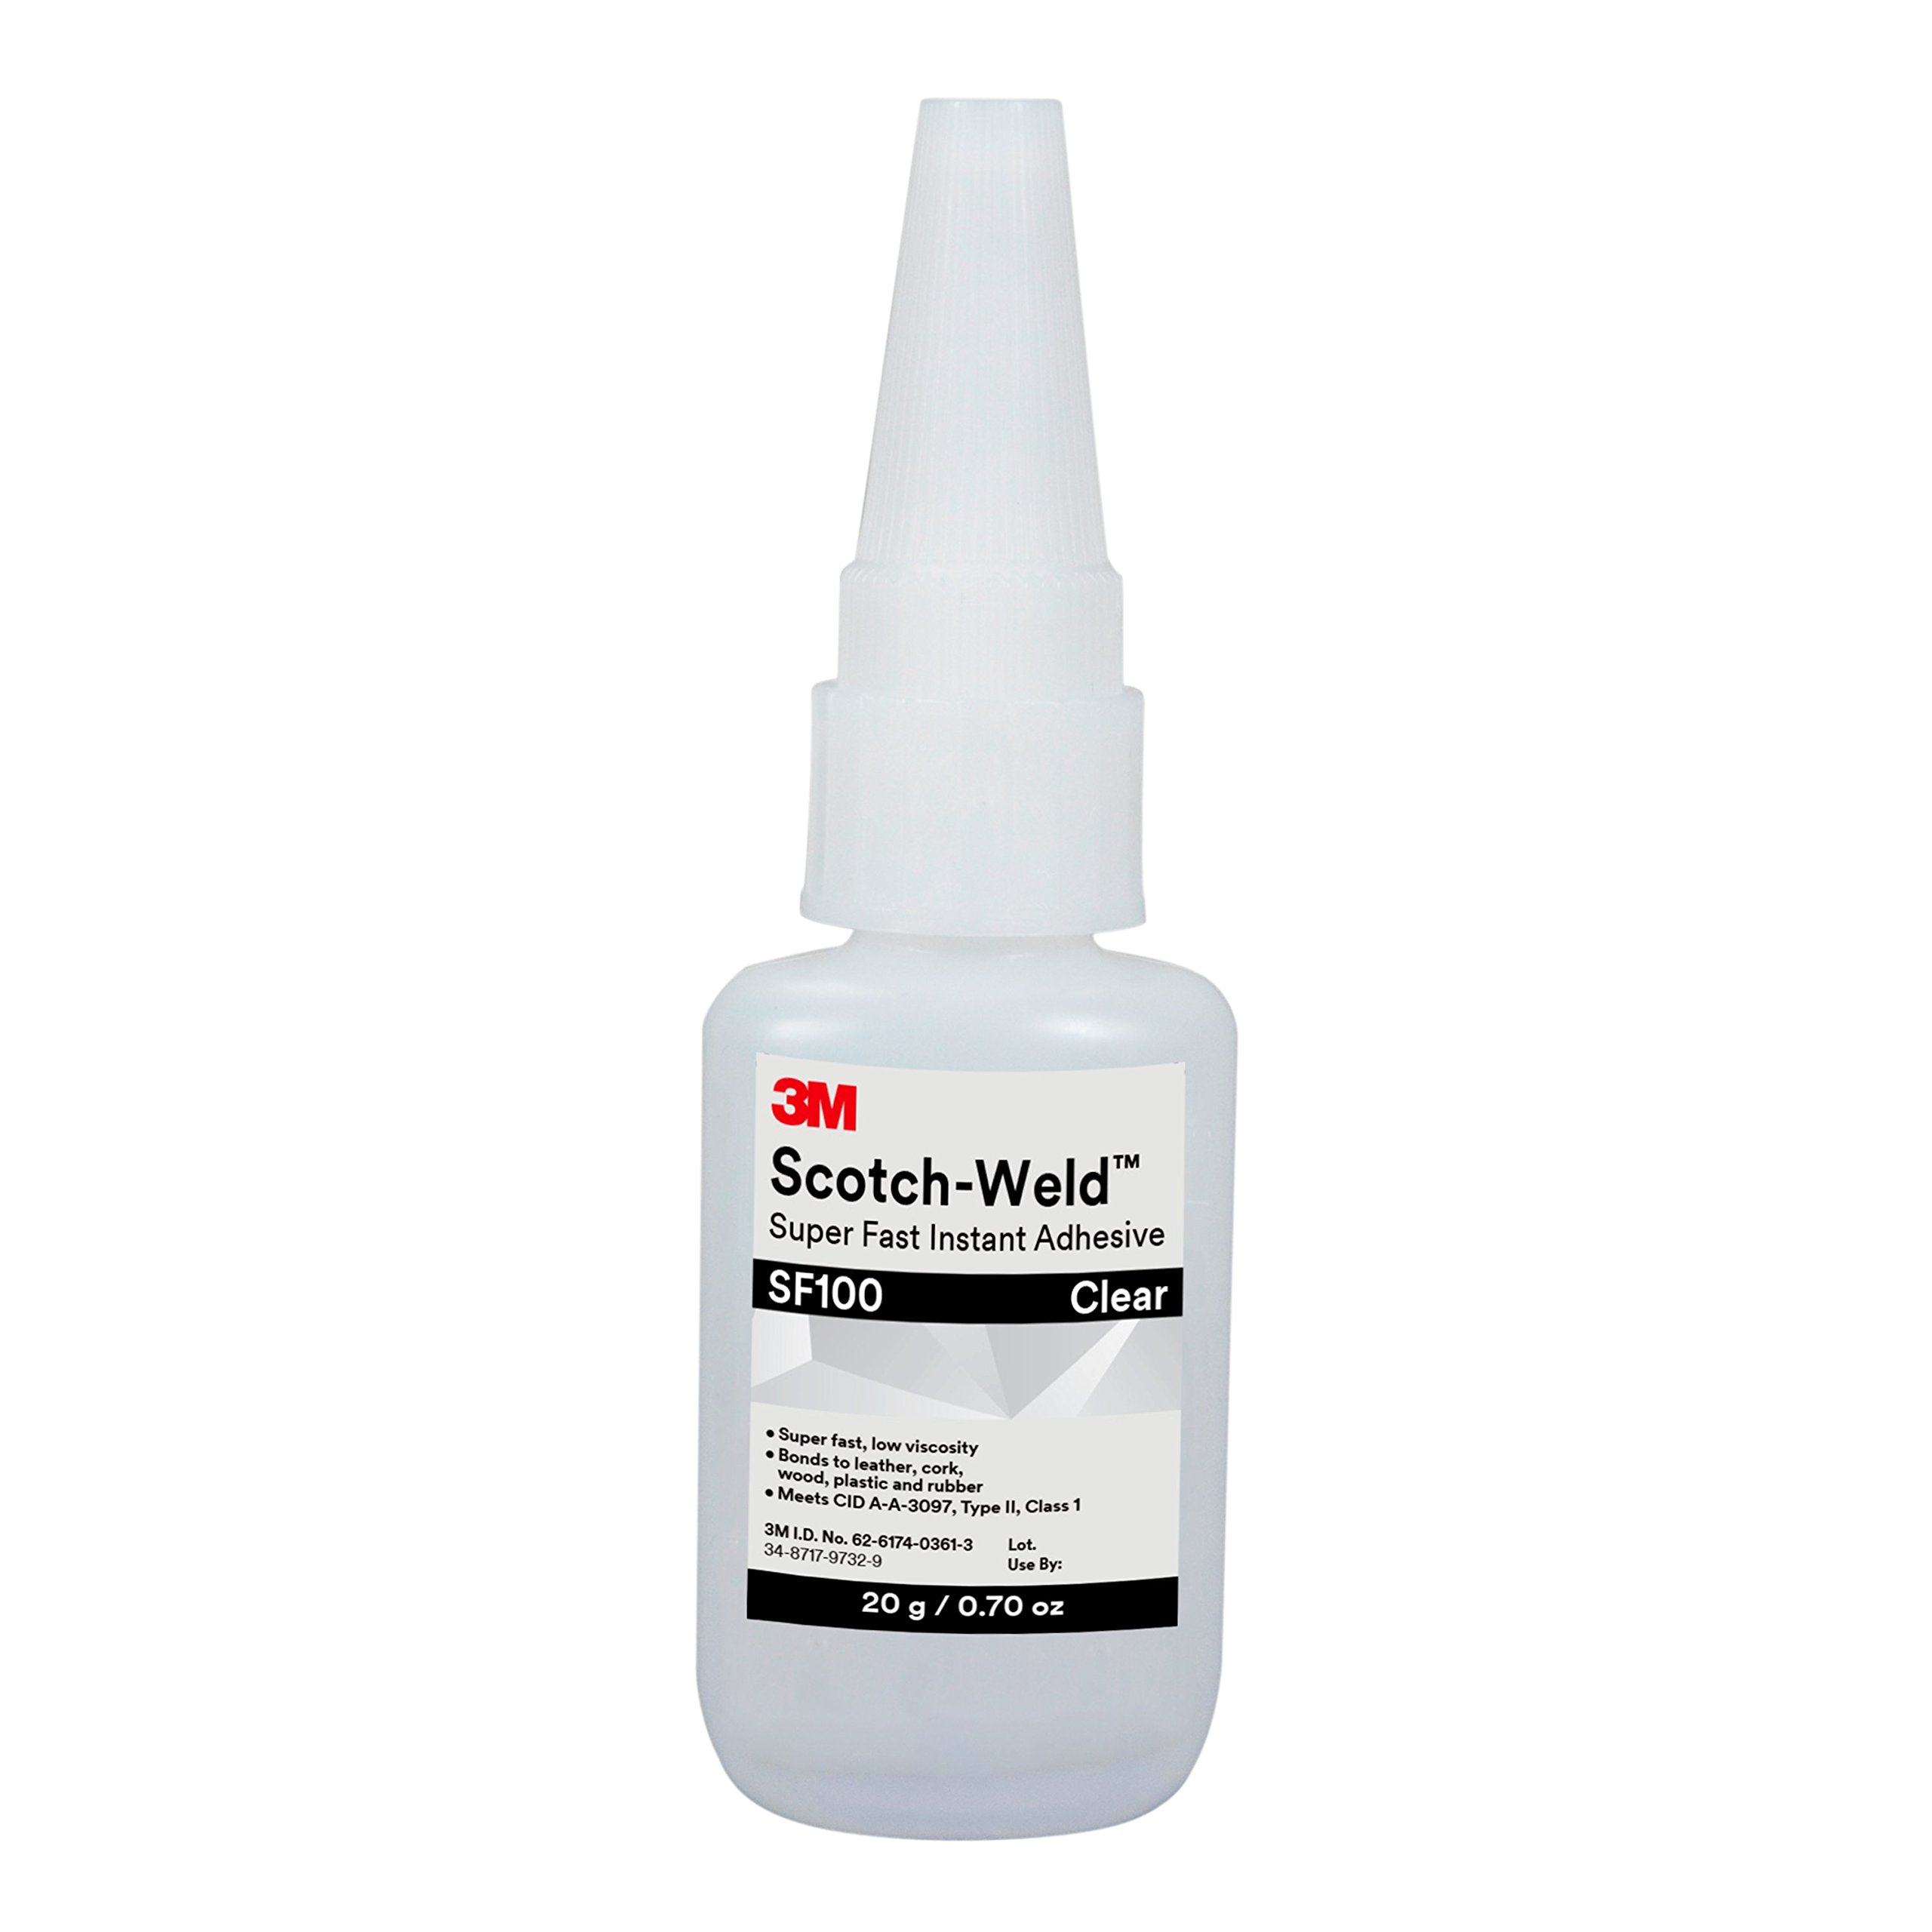 3M Scotch-Weld 62631 Super Fast Instant Adhesive SF100, 20 g Bottle, 0.676 fl. oz.